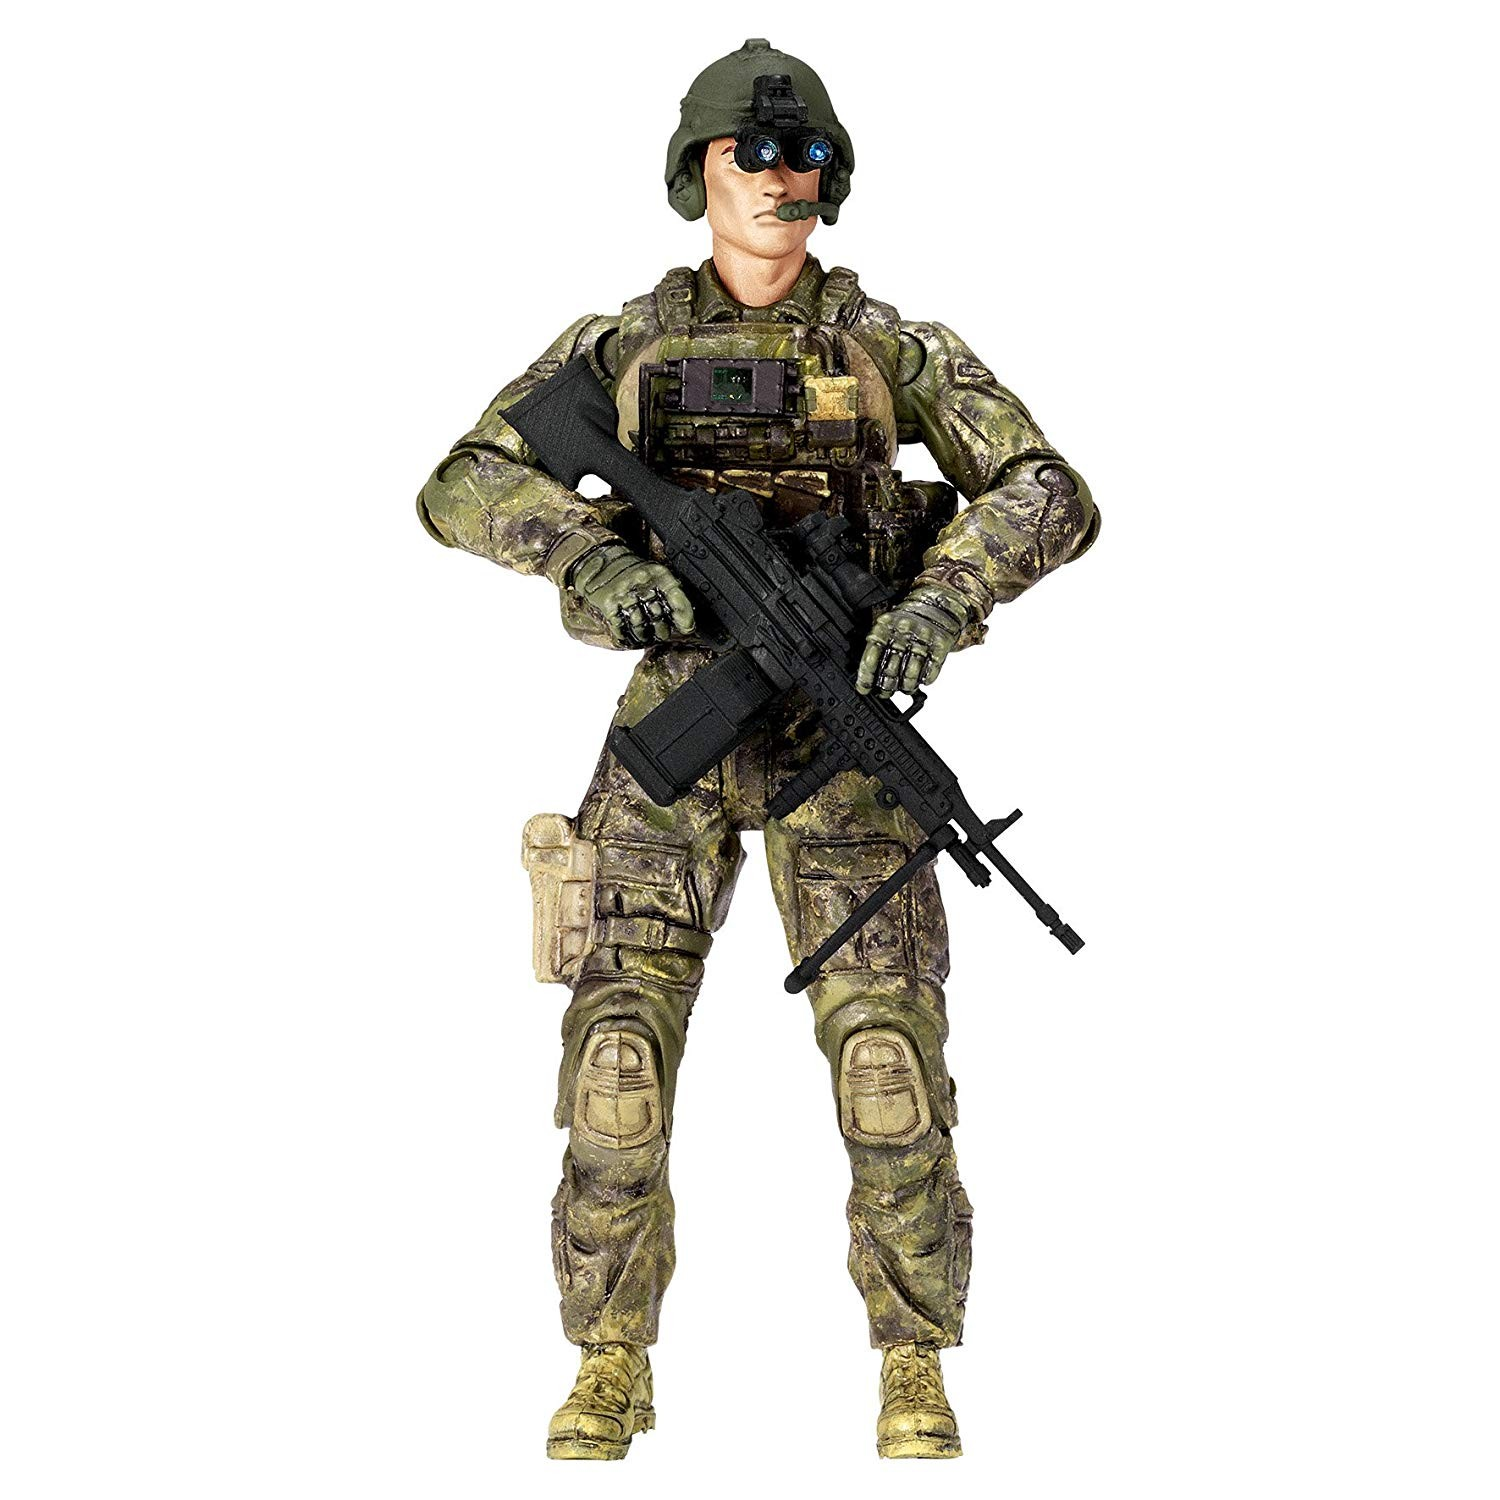 High-quality PVC Plastic Promotion Military Set Toys Action Figure Manufacturers, High-quality PVC Plastic Promotion Military Set Toys Action Figure Factory, Supply High-quality PVC Plastic Promotion Military Set Toys Action Figure